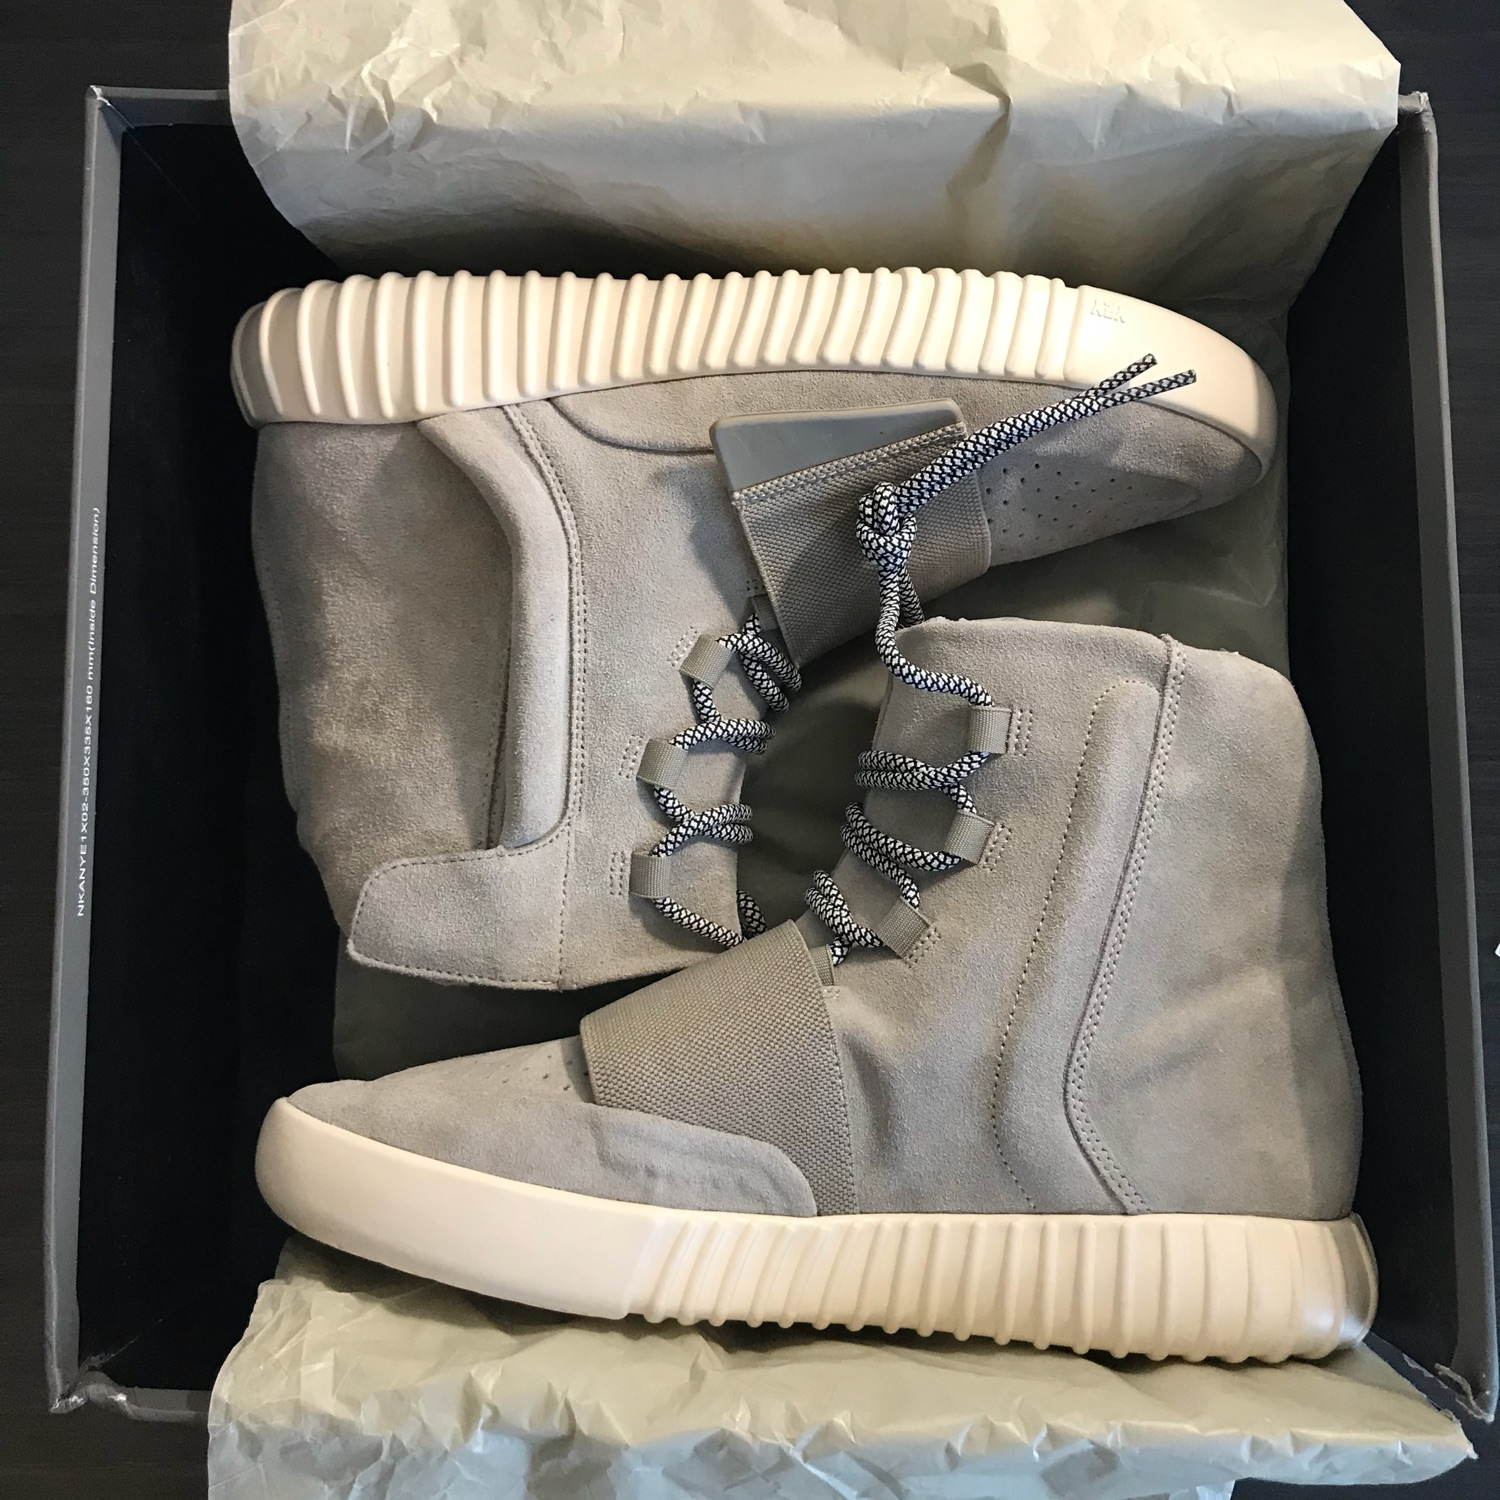 100% authentic f3d84 f9035 Adidas Yeezy Boost 750 Og Light Brown